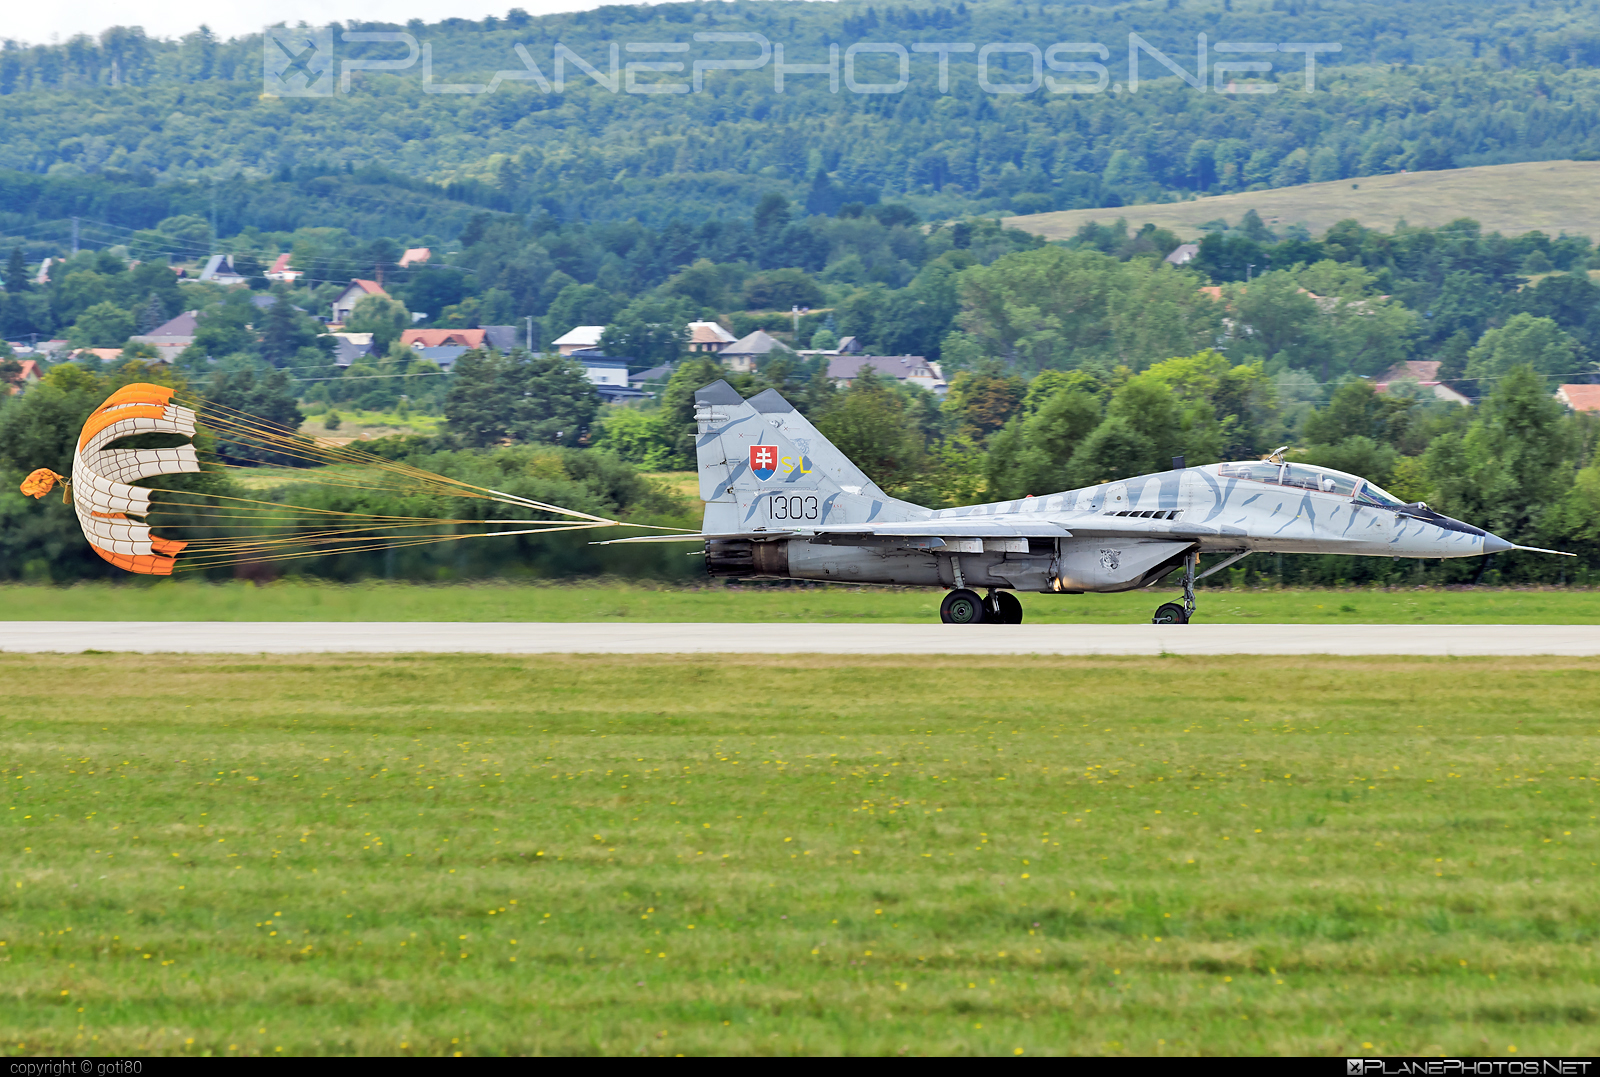 Mikoyan-Gurevich MiG-29UBS - 1303 operated by Vzdušné sily OS SR (Slovak Air Force) #mig #mig29 #mig29ubs #mikoyangurevich #siaf2019 #slovakairforce #vzdusnesilyossr